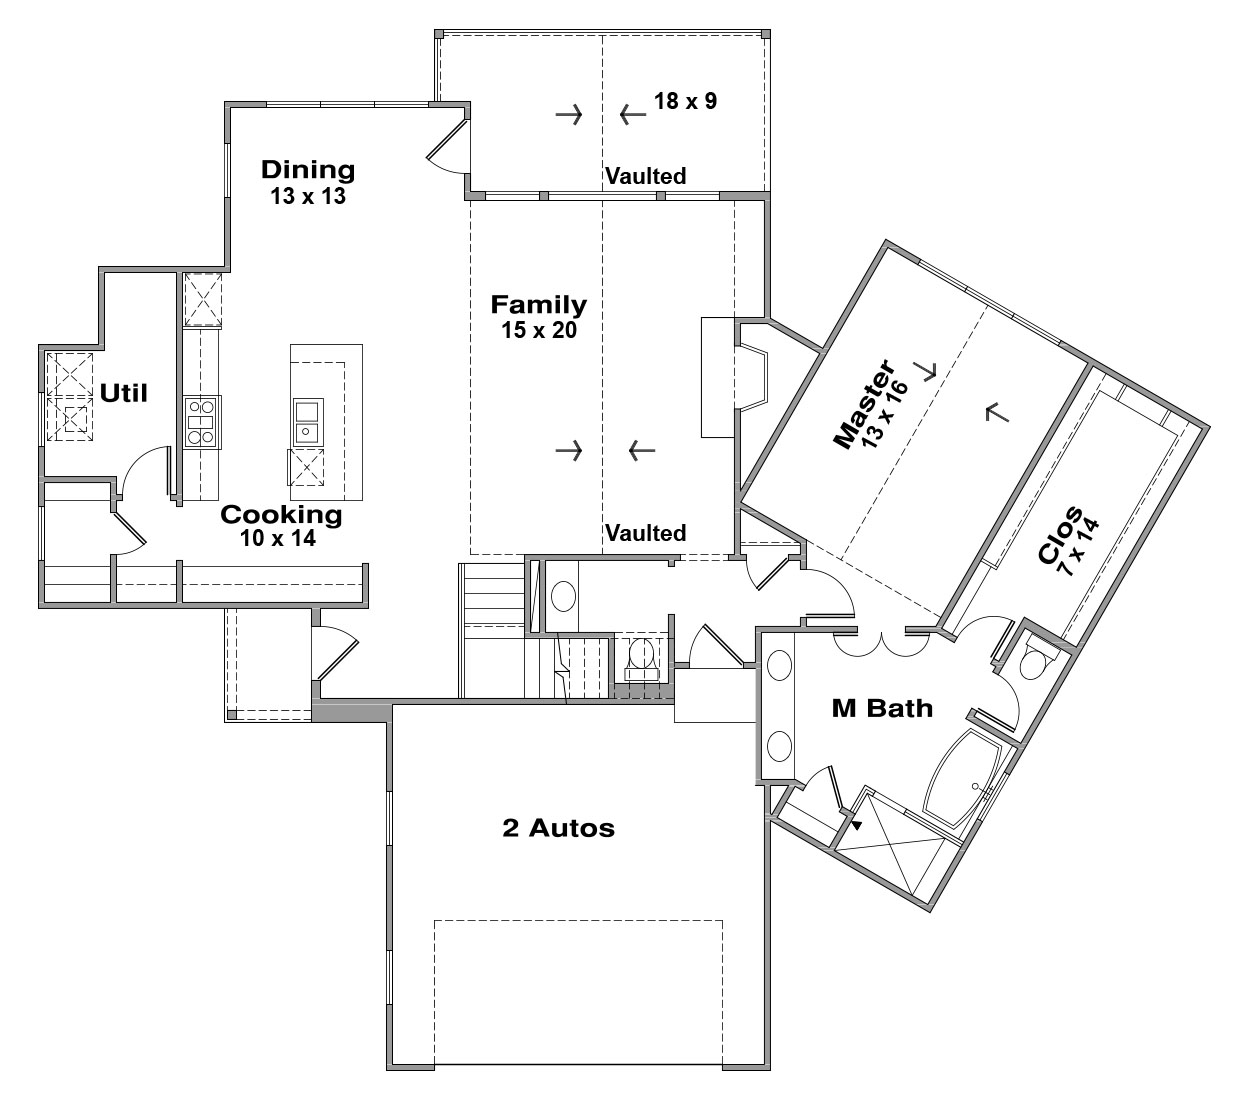 Lot 8A First Floor JPEG.jpg